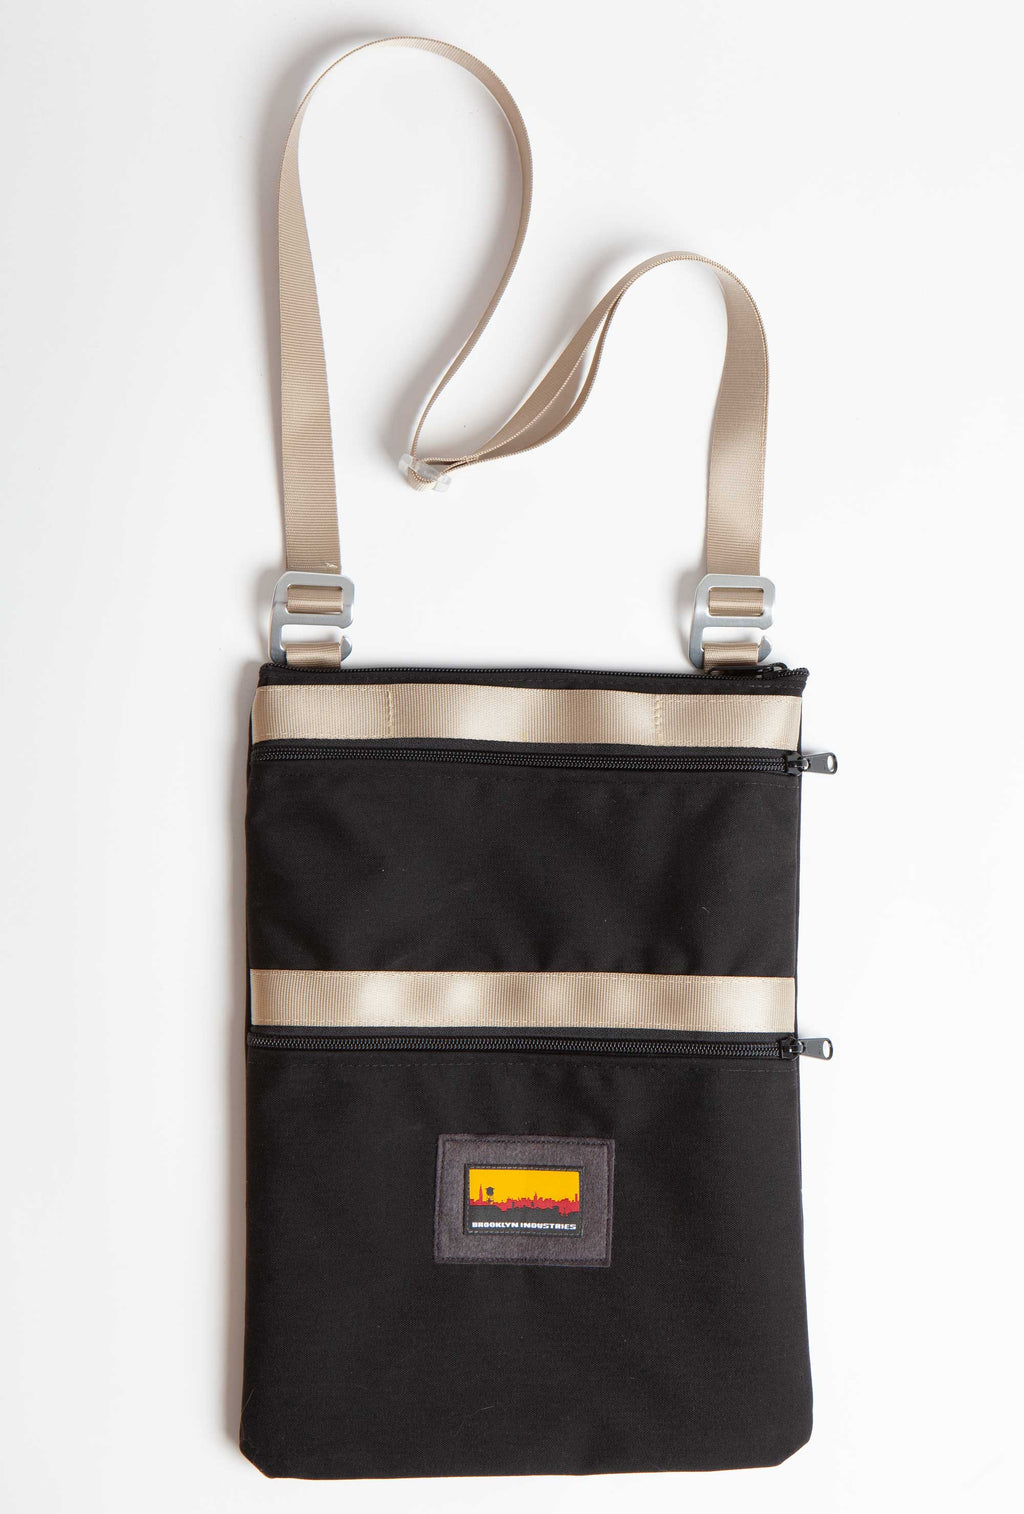 SMALL LAPTOP CARRIER BLACK